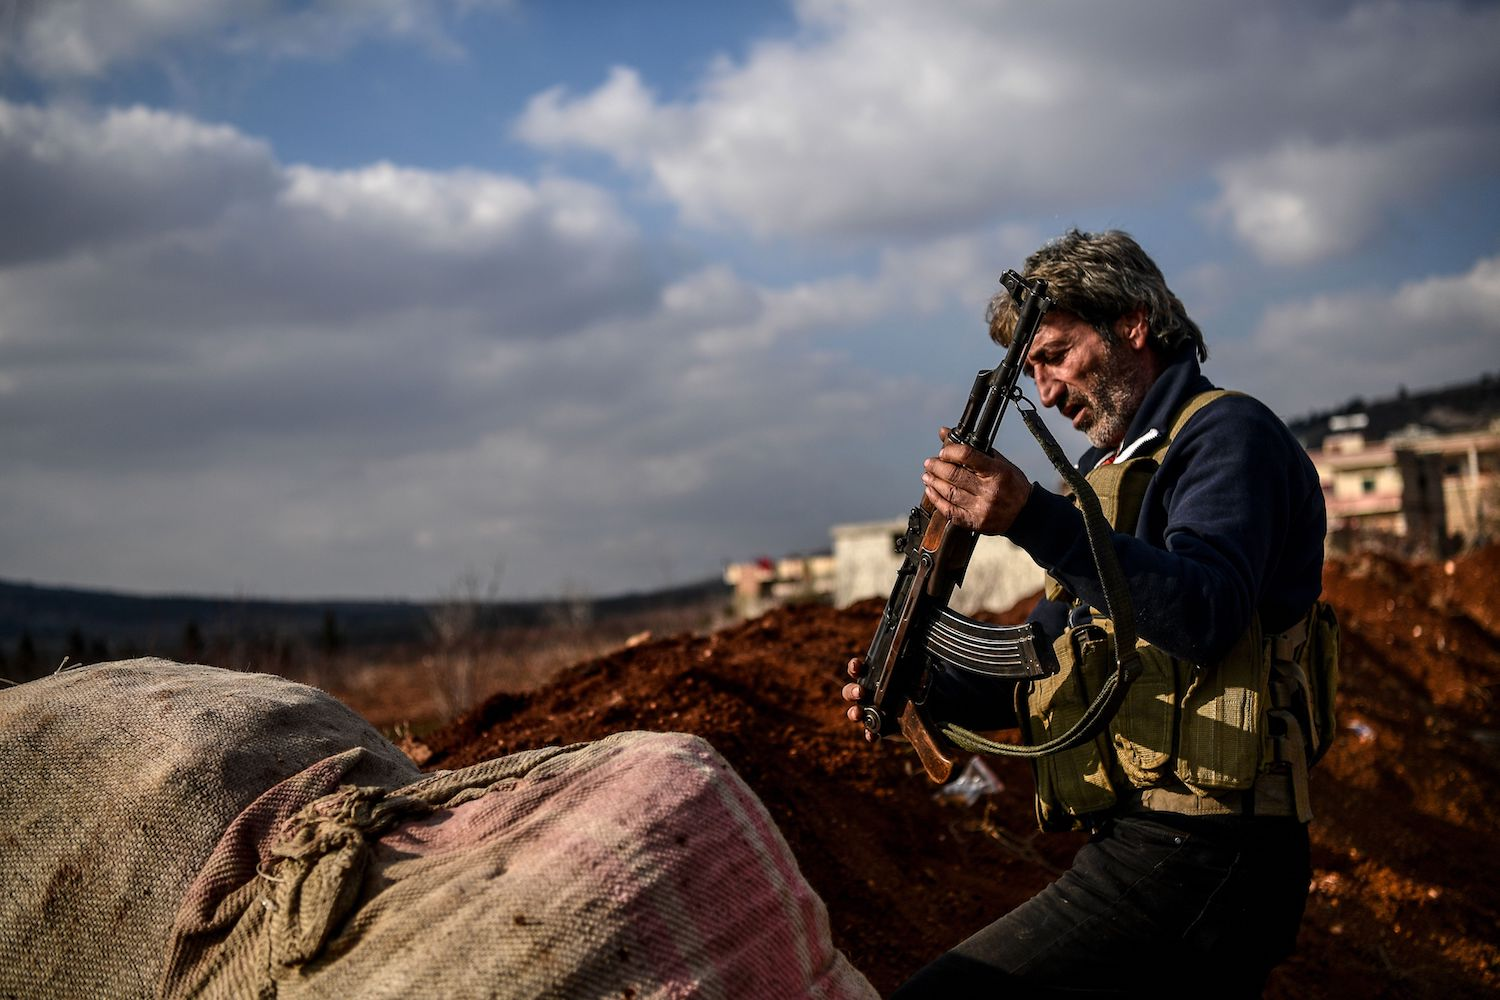 TOPSHOT - A Turkish-backed Syrian rebel fighter stands guard at a checkpoint in the Syrian town of Azaz on a road leading to Afrin, on February 1, 2018. Turkey and allied Syrian rebels have pressed on with Operation Olive Branch in the Kurdish-controlled Afrin enclave despite mounting international concern and reports of rising civilian casualties. / AFP PHOTO / OZAN KOSE        (Photo credit should read OZAN KOSE/AFP/Getty Images)